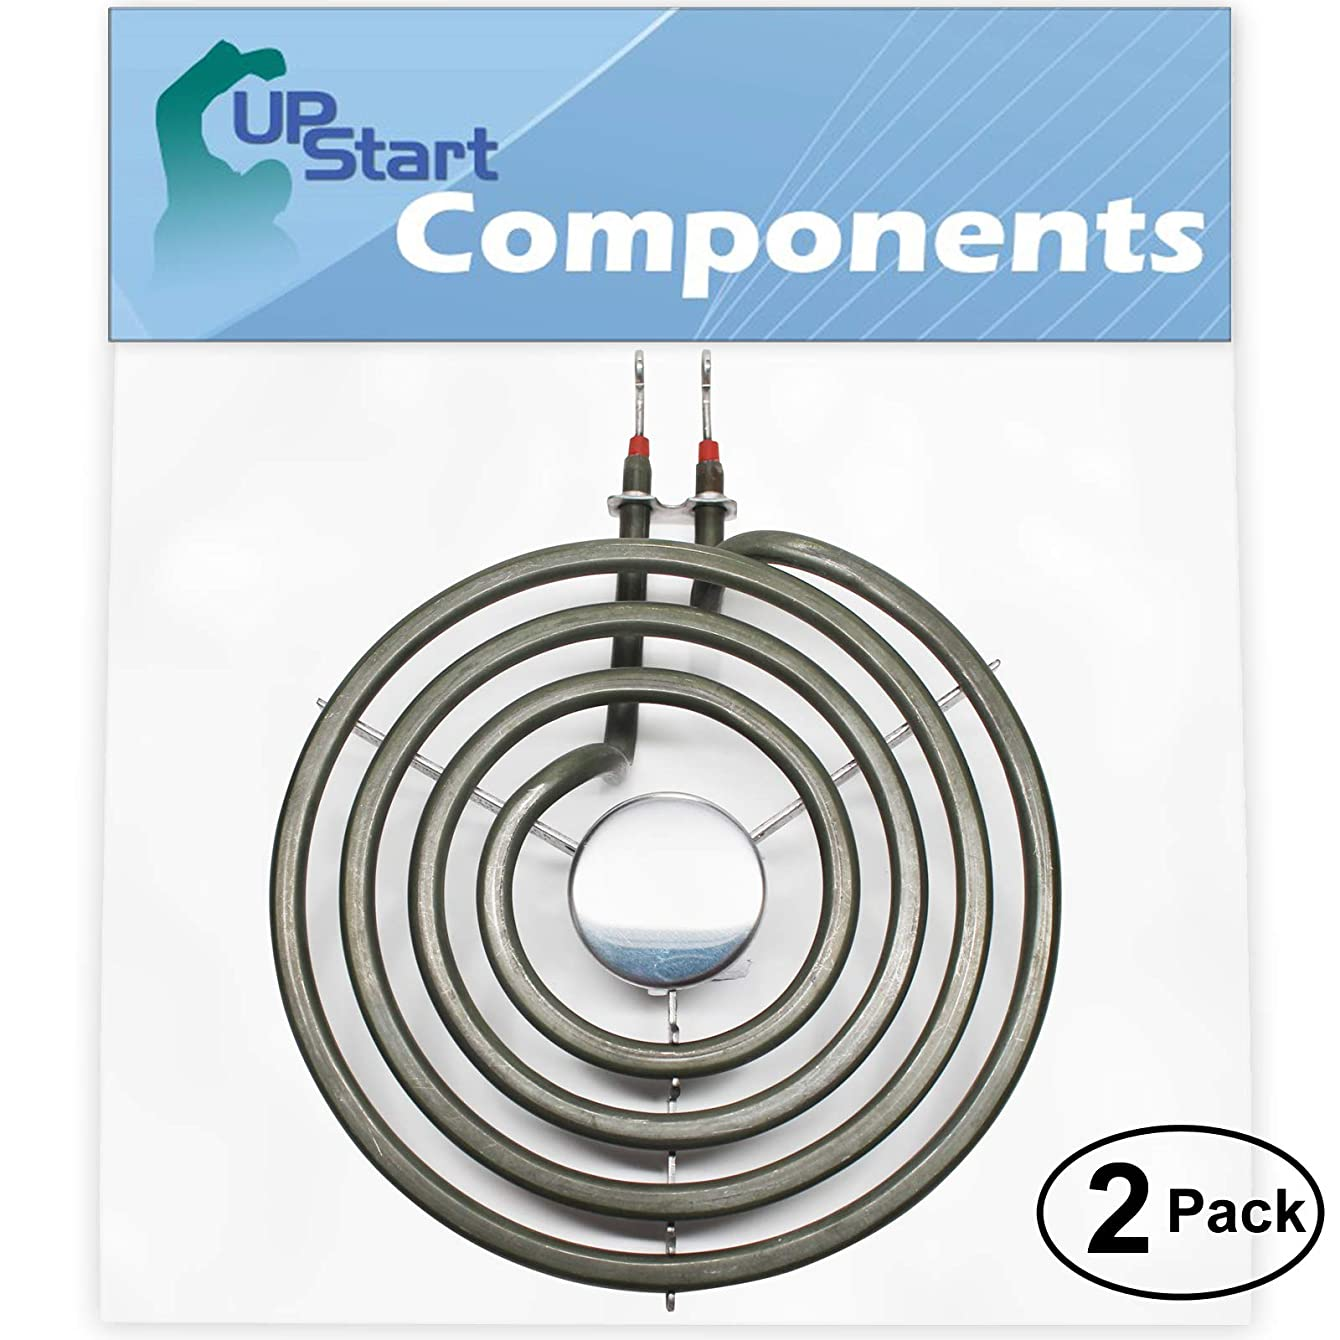 2-Pack Replacement Whirlpool RF360BXWN2 6 inch 4 Turns Surface Burner Element - Compatible Whirlpool 660532 Heating Element for Range, Stove & Cooktop